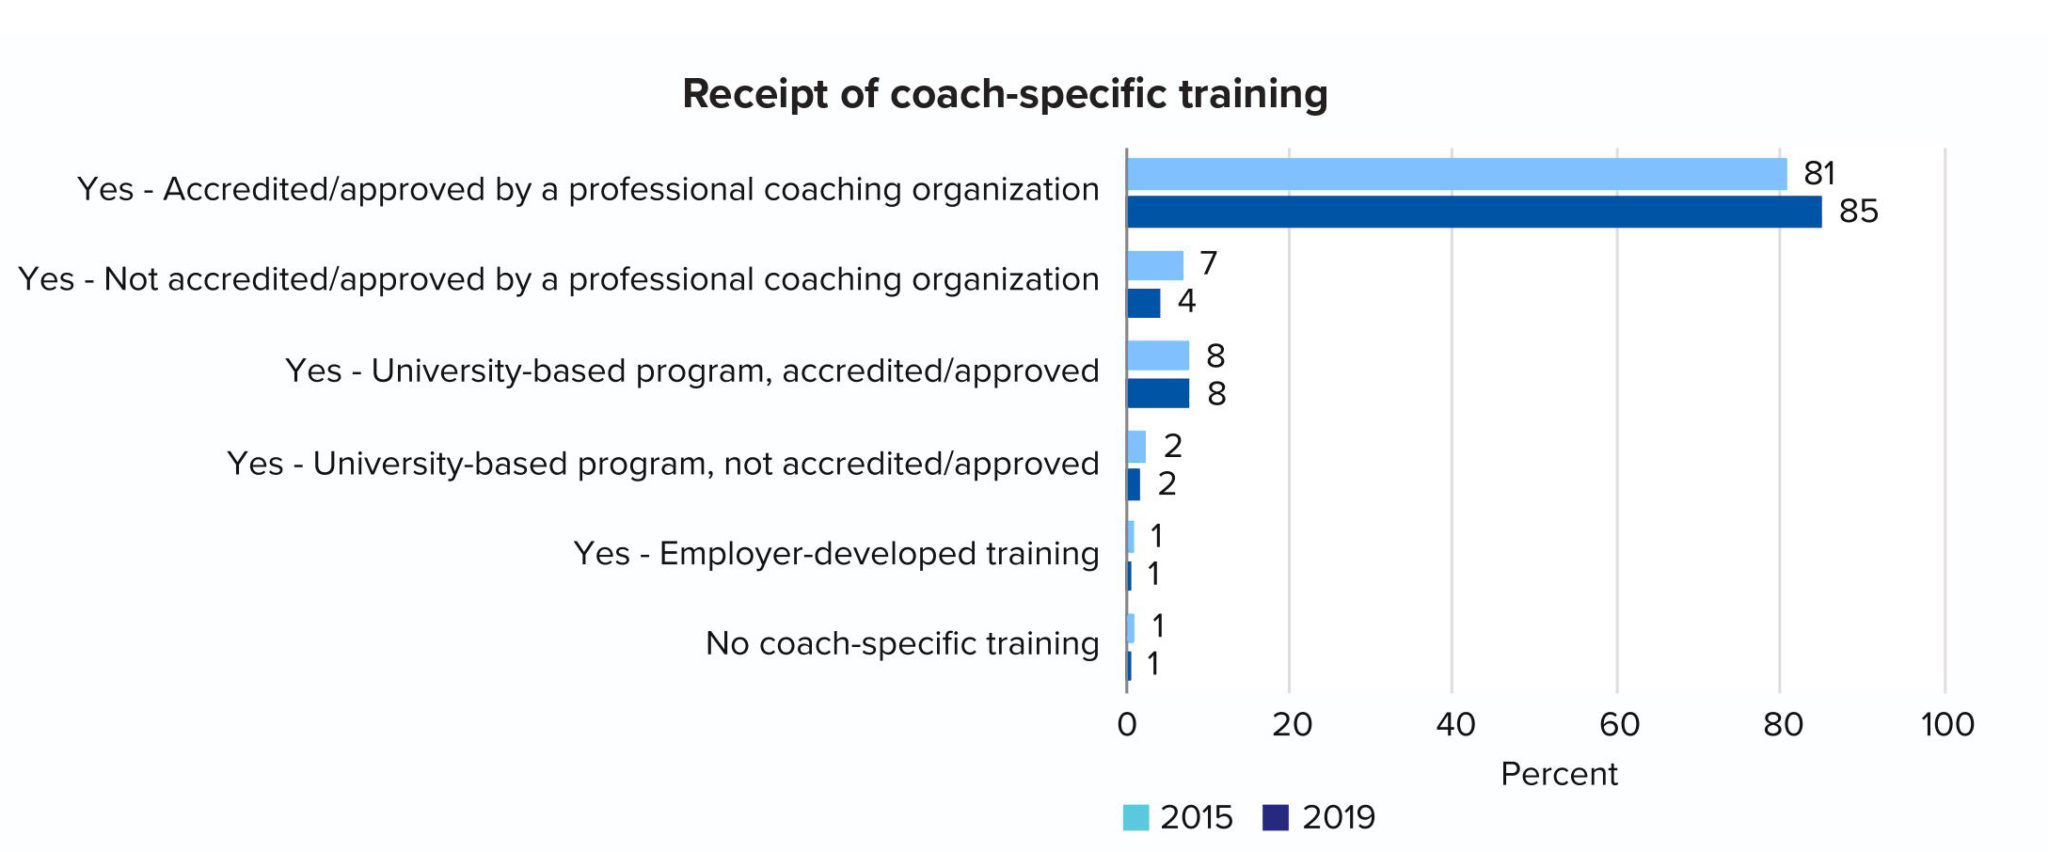 RECEIPT OF COACH-SPECIFIC TRAINING